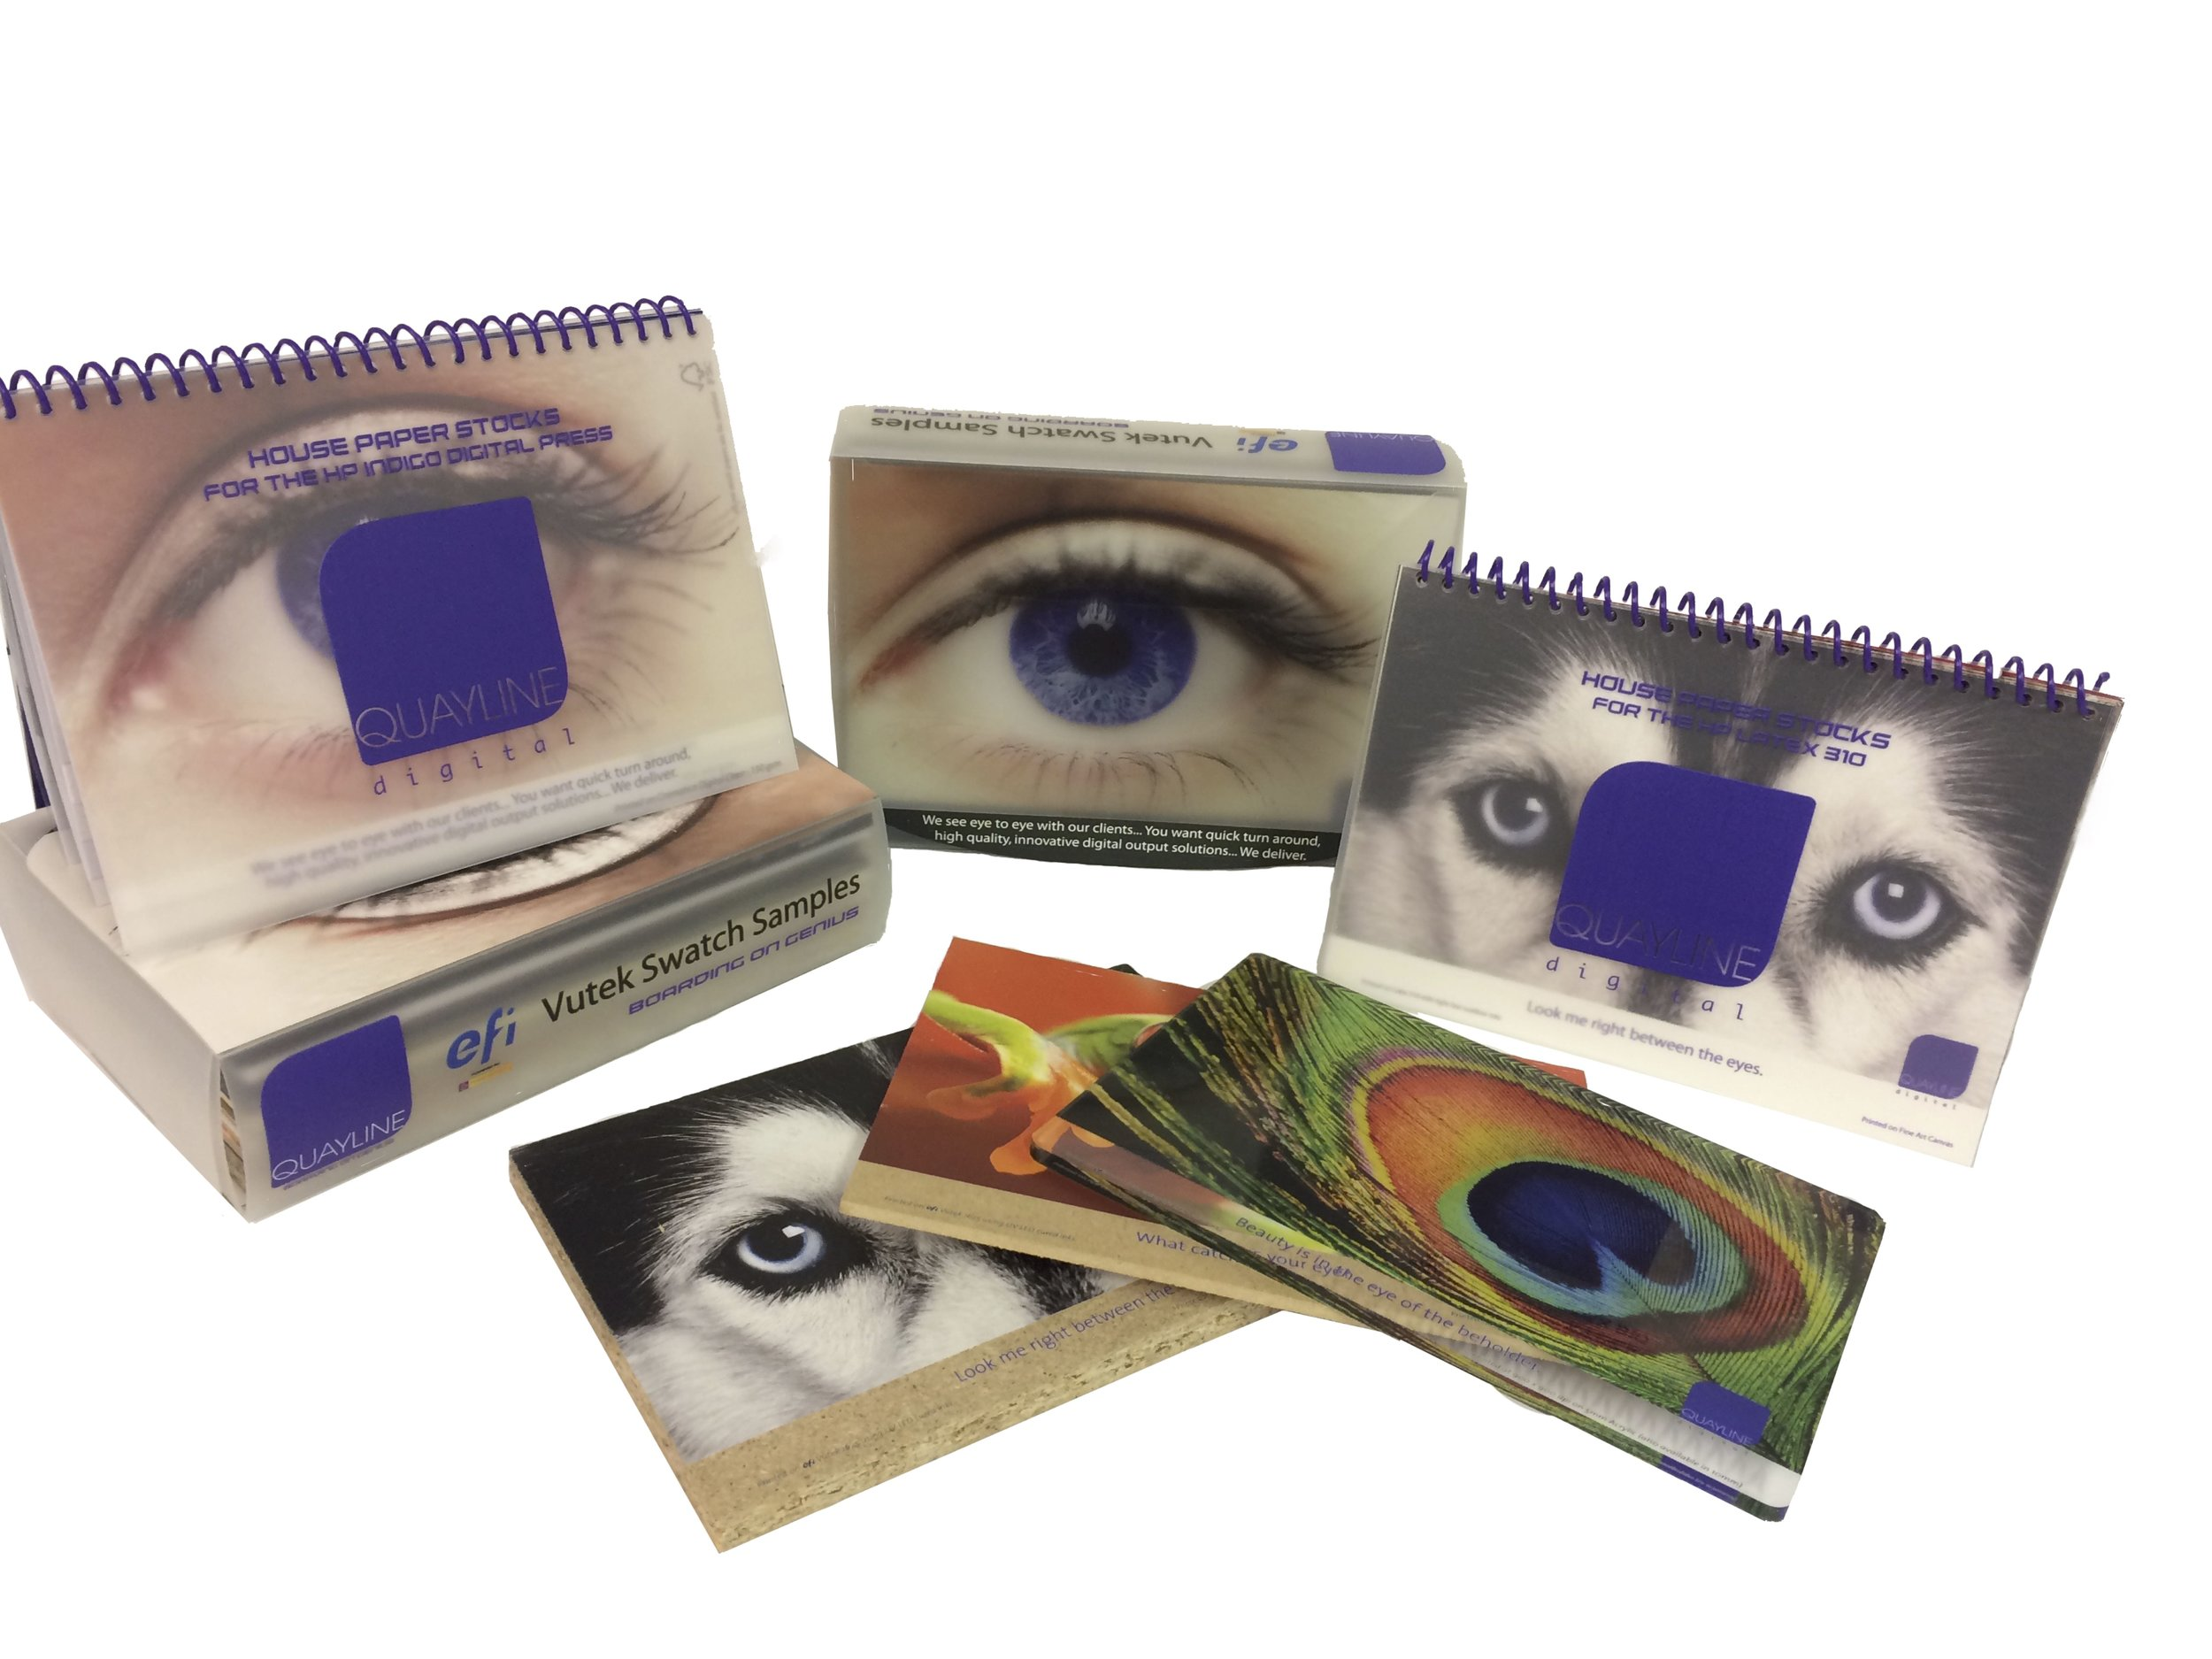 New Sample Packs Out Now - Call 02380266752 to request yours today